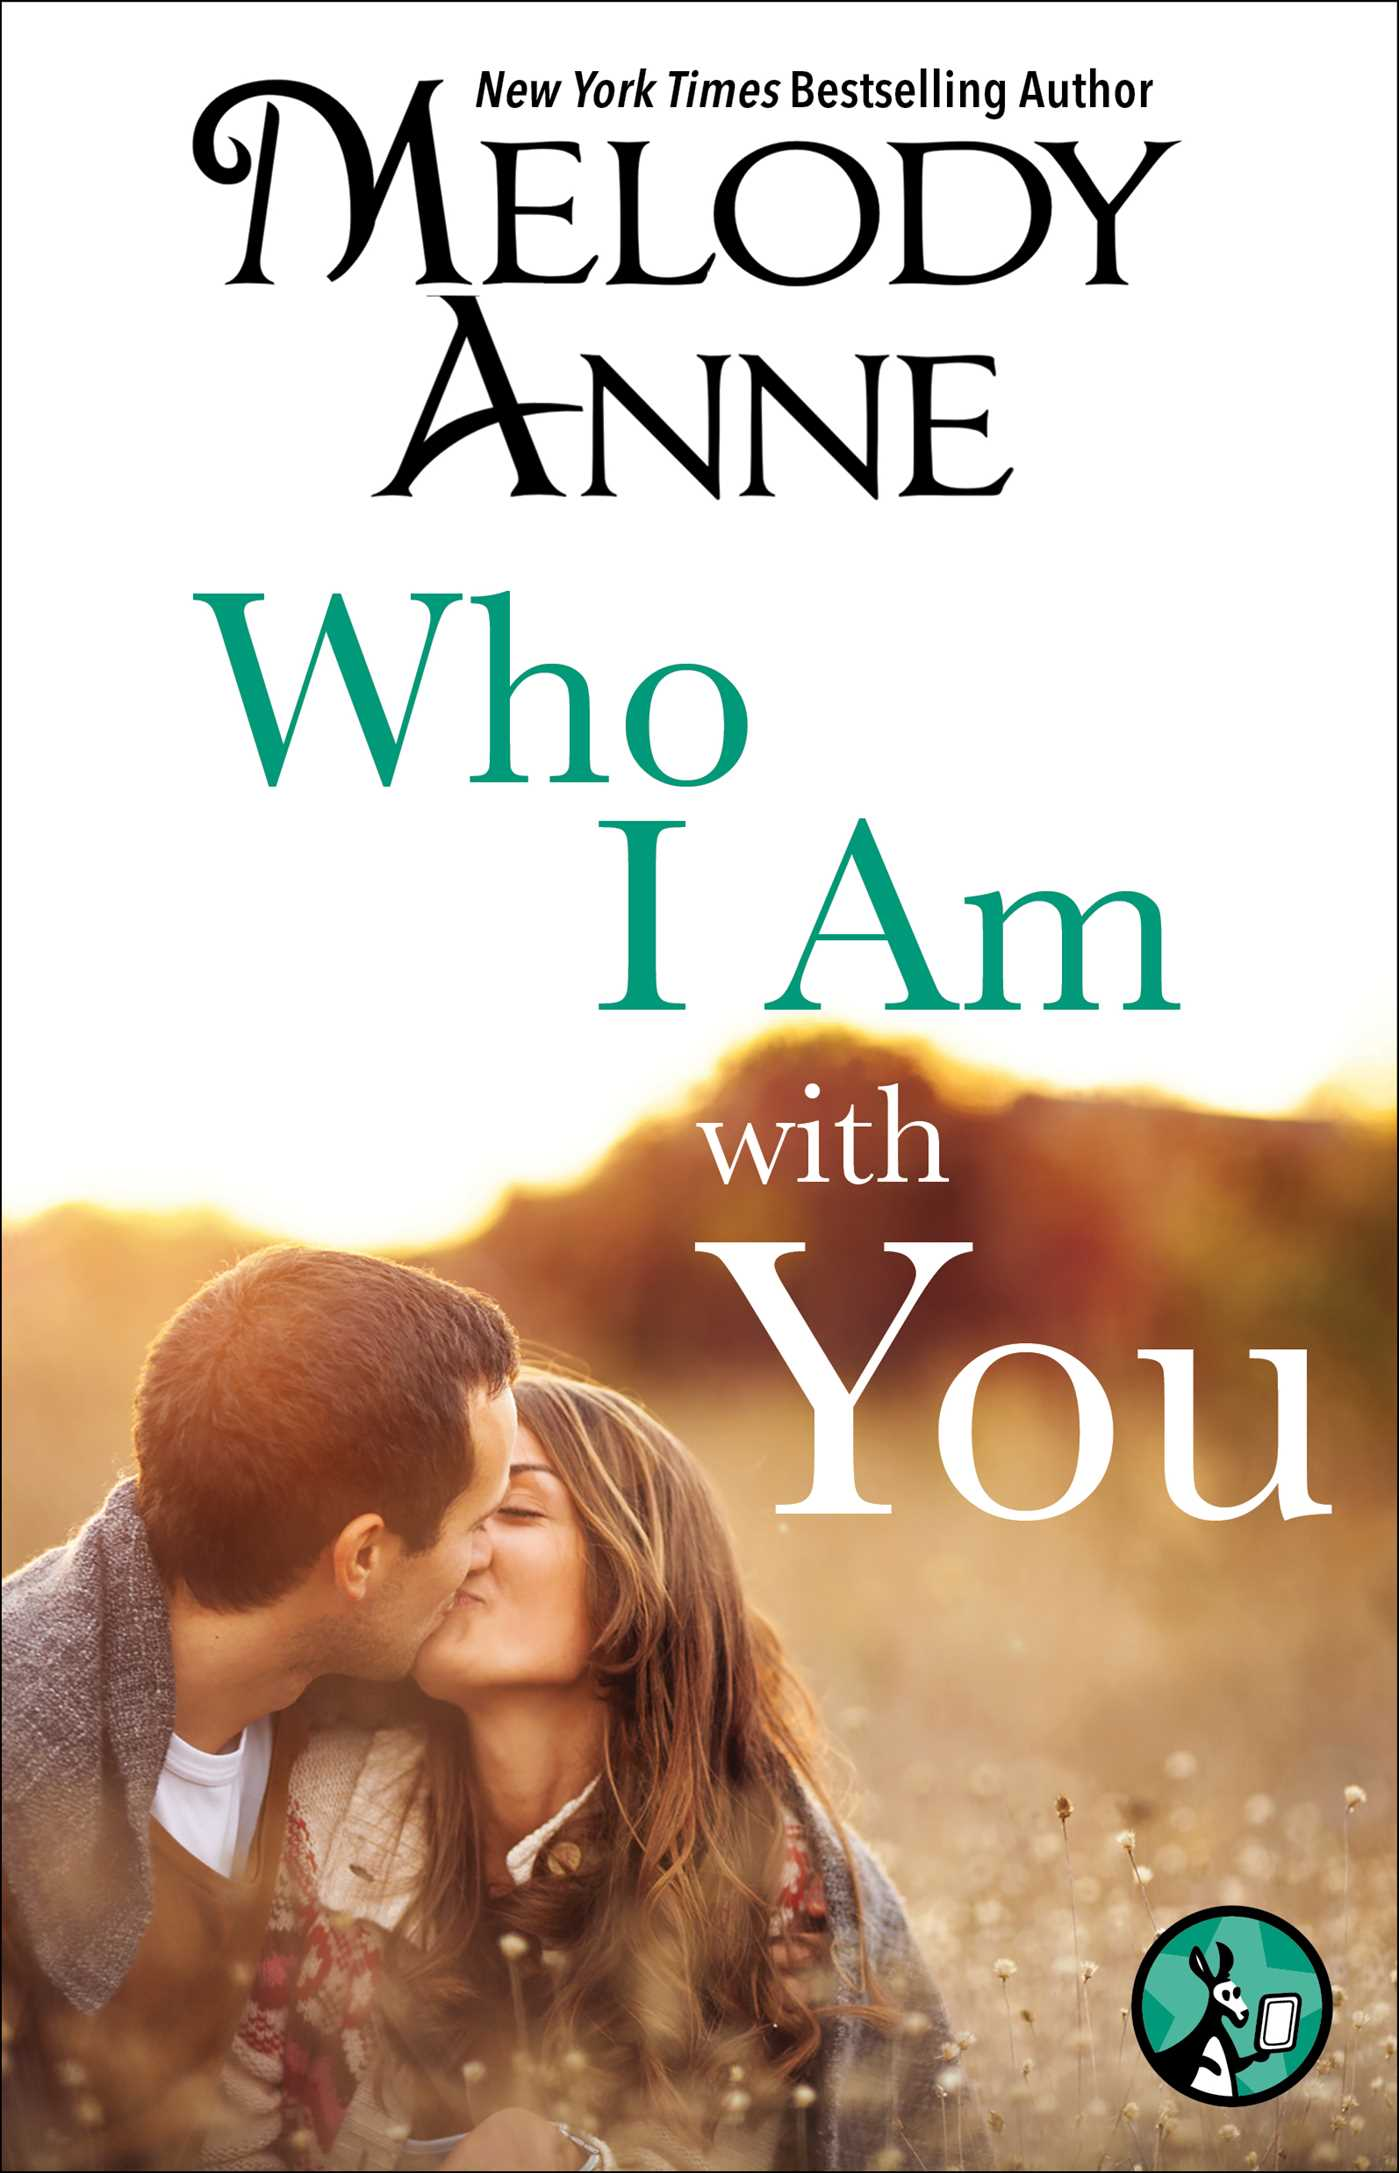 Book Cover Image (jpg): Who I Am with You